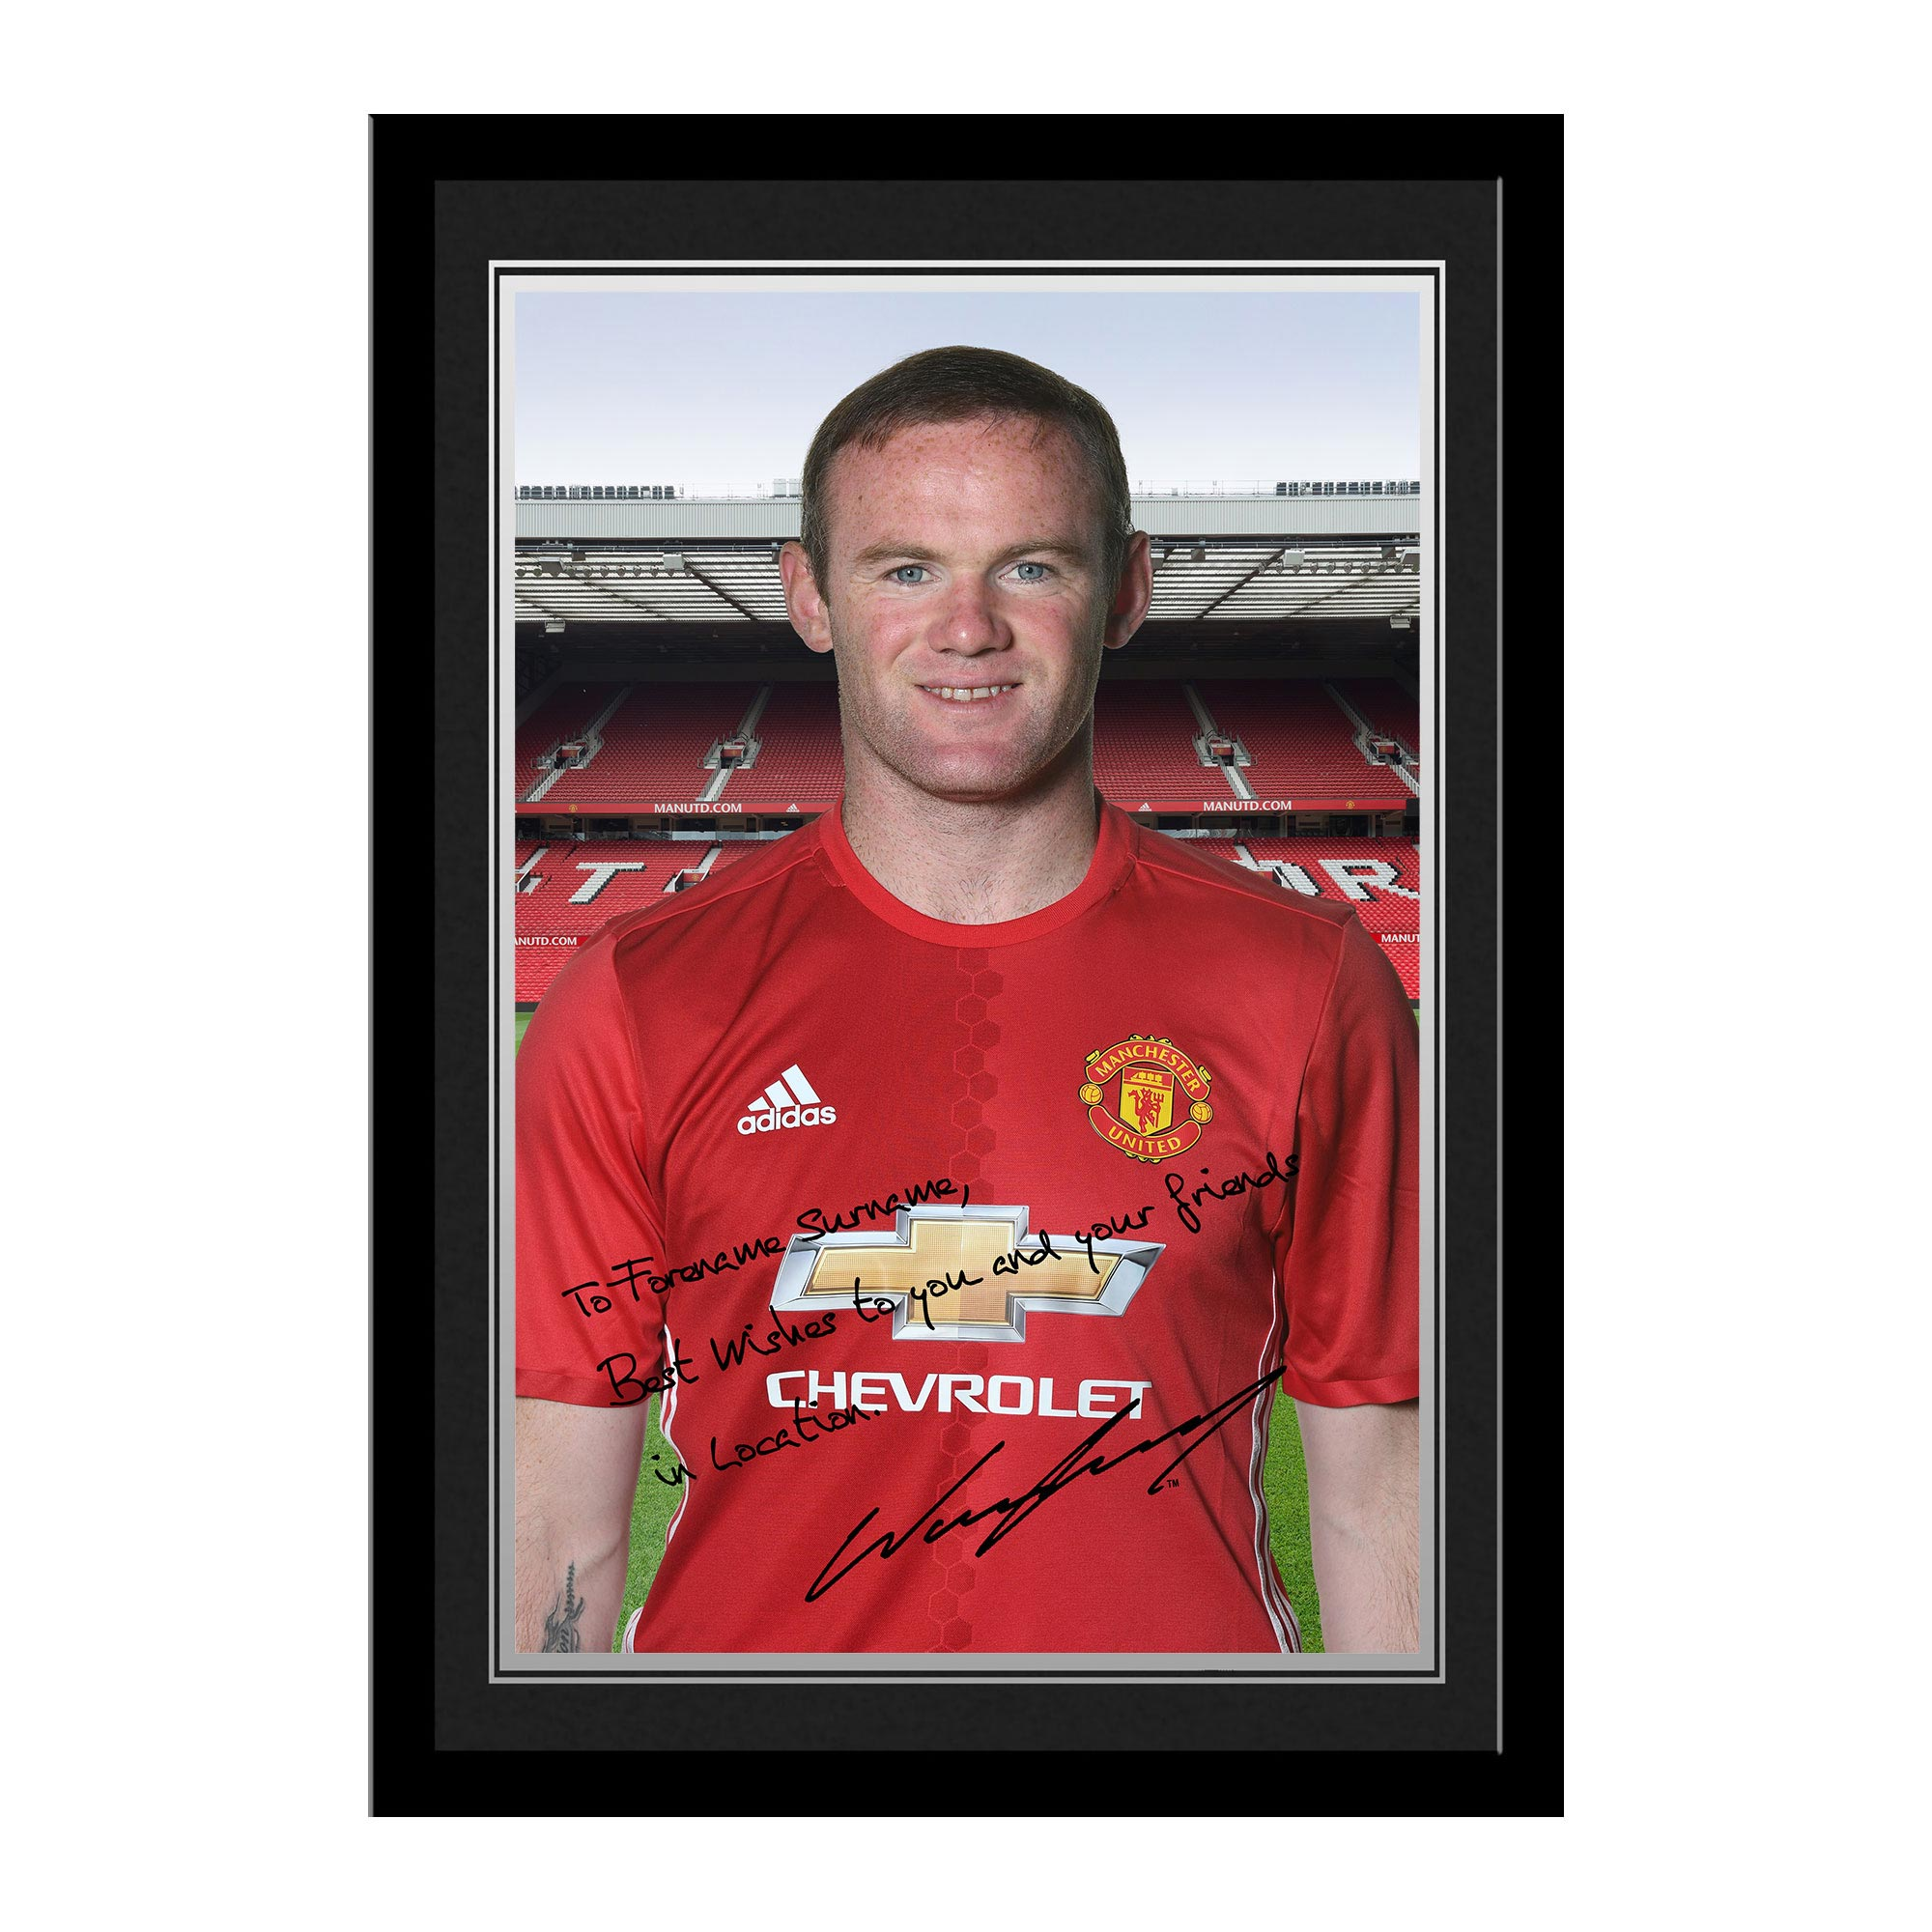 Manchester United Personalised Signature Photo Framed - Rooney